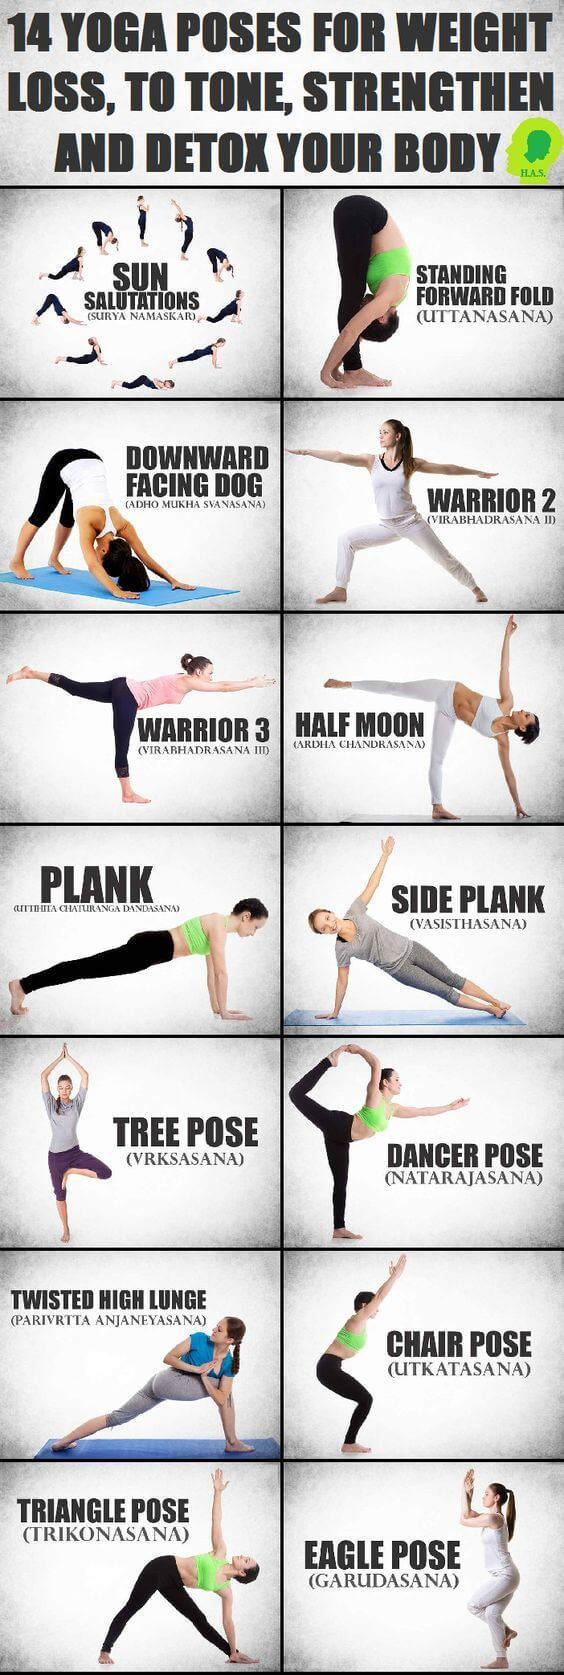 14 Yoga Poses for Weight Loss, To Tone, Strengthen and Detox Your Body